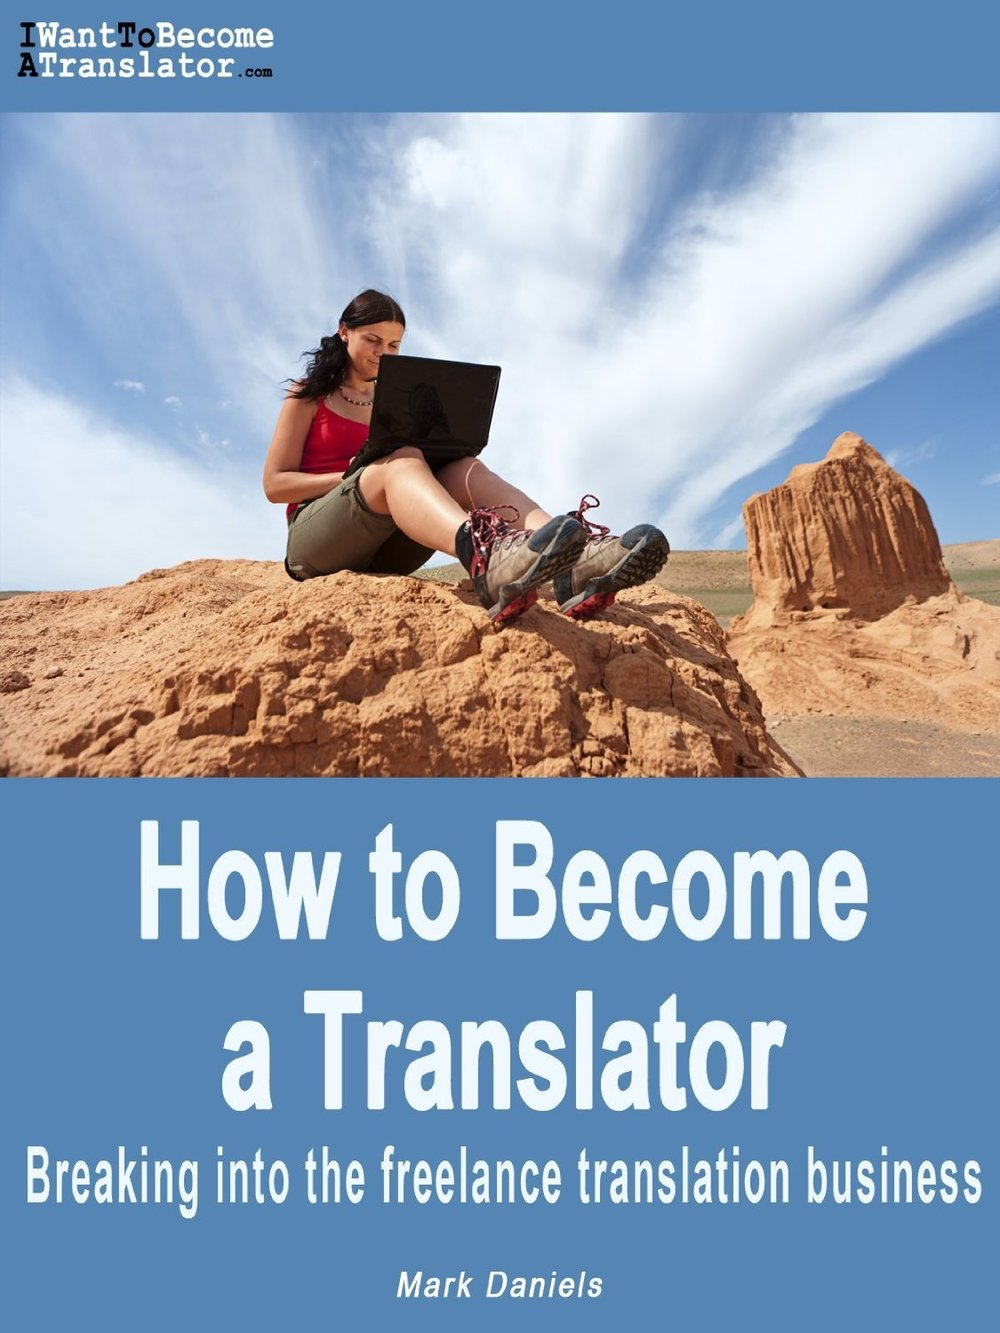 how to become a translator.jpg